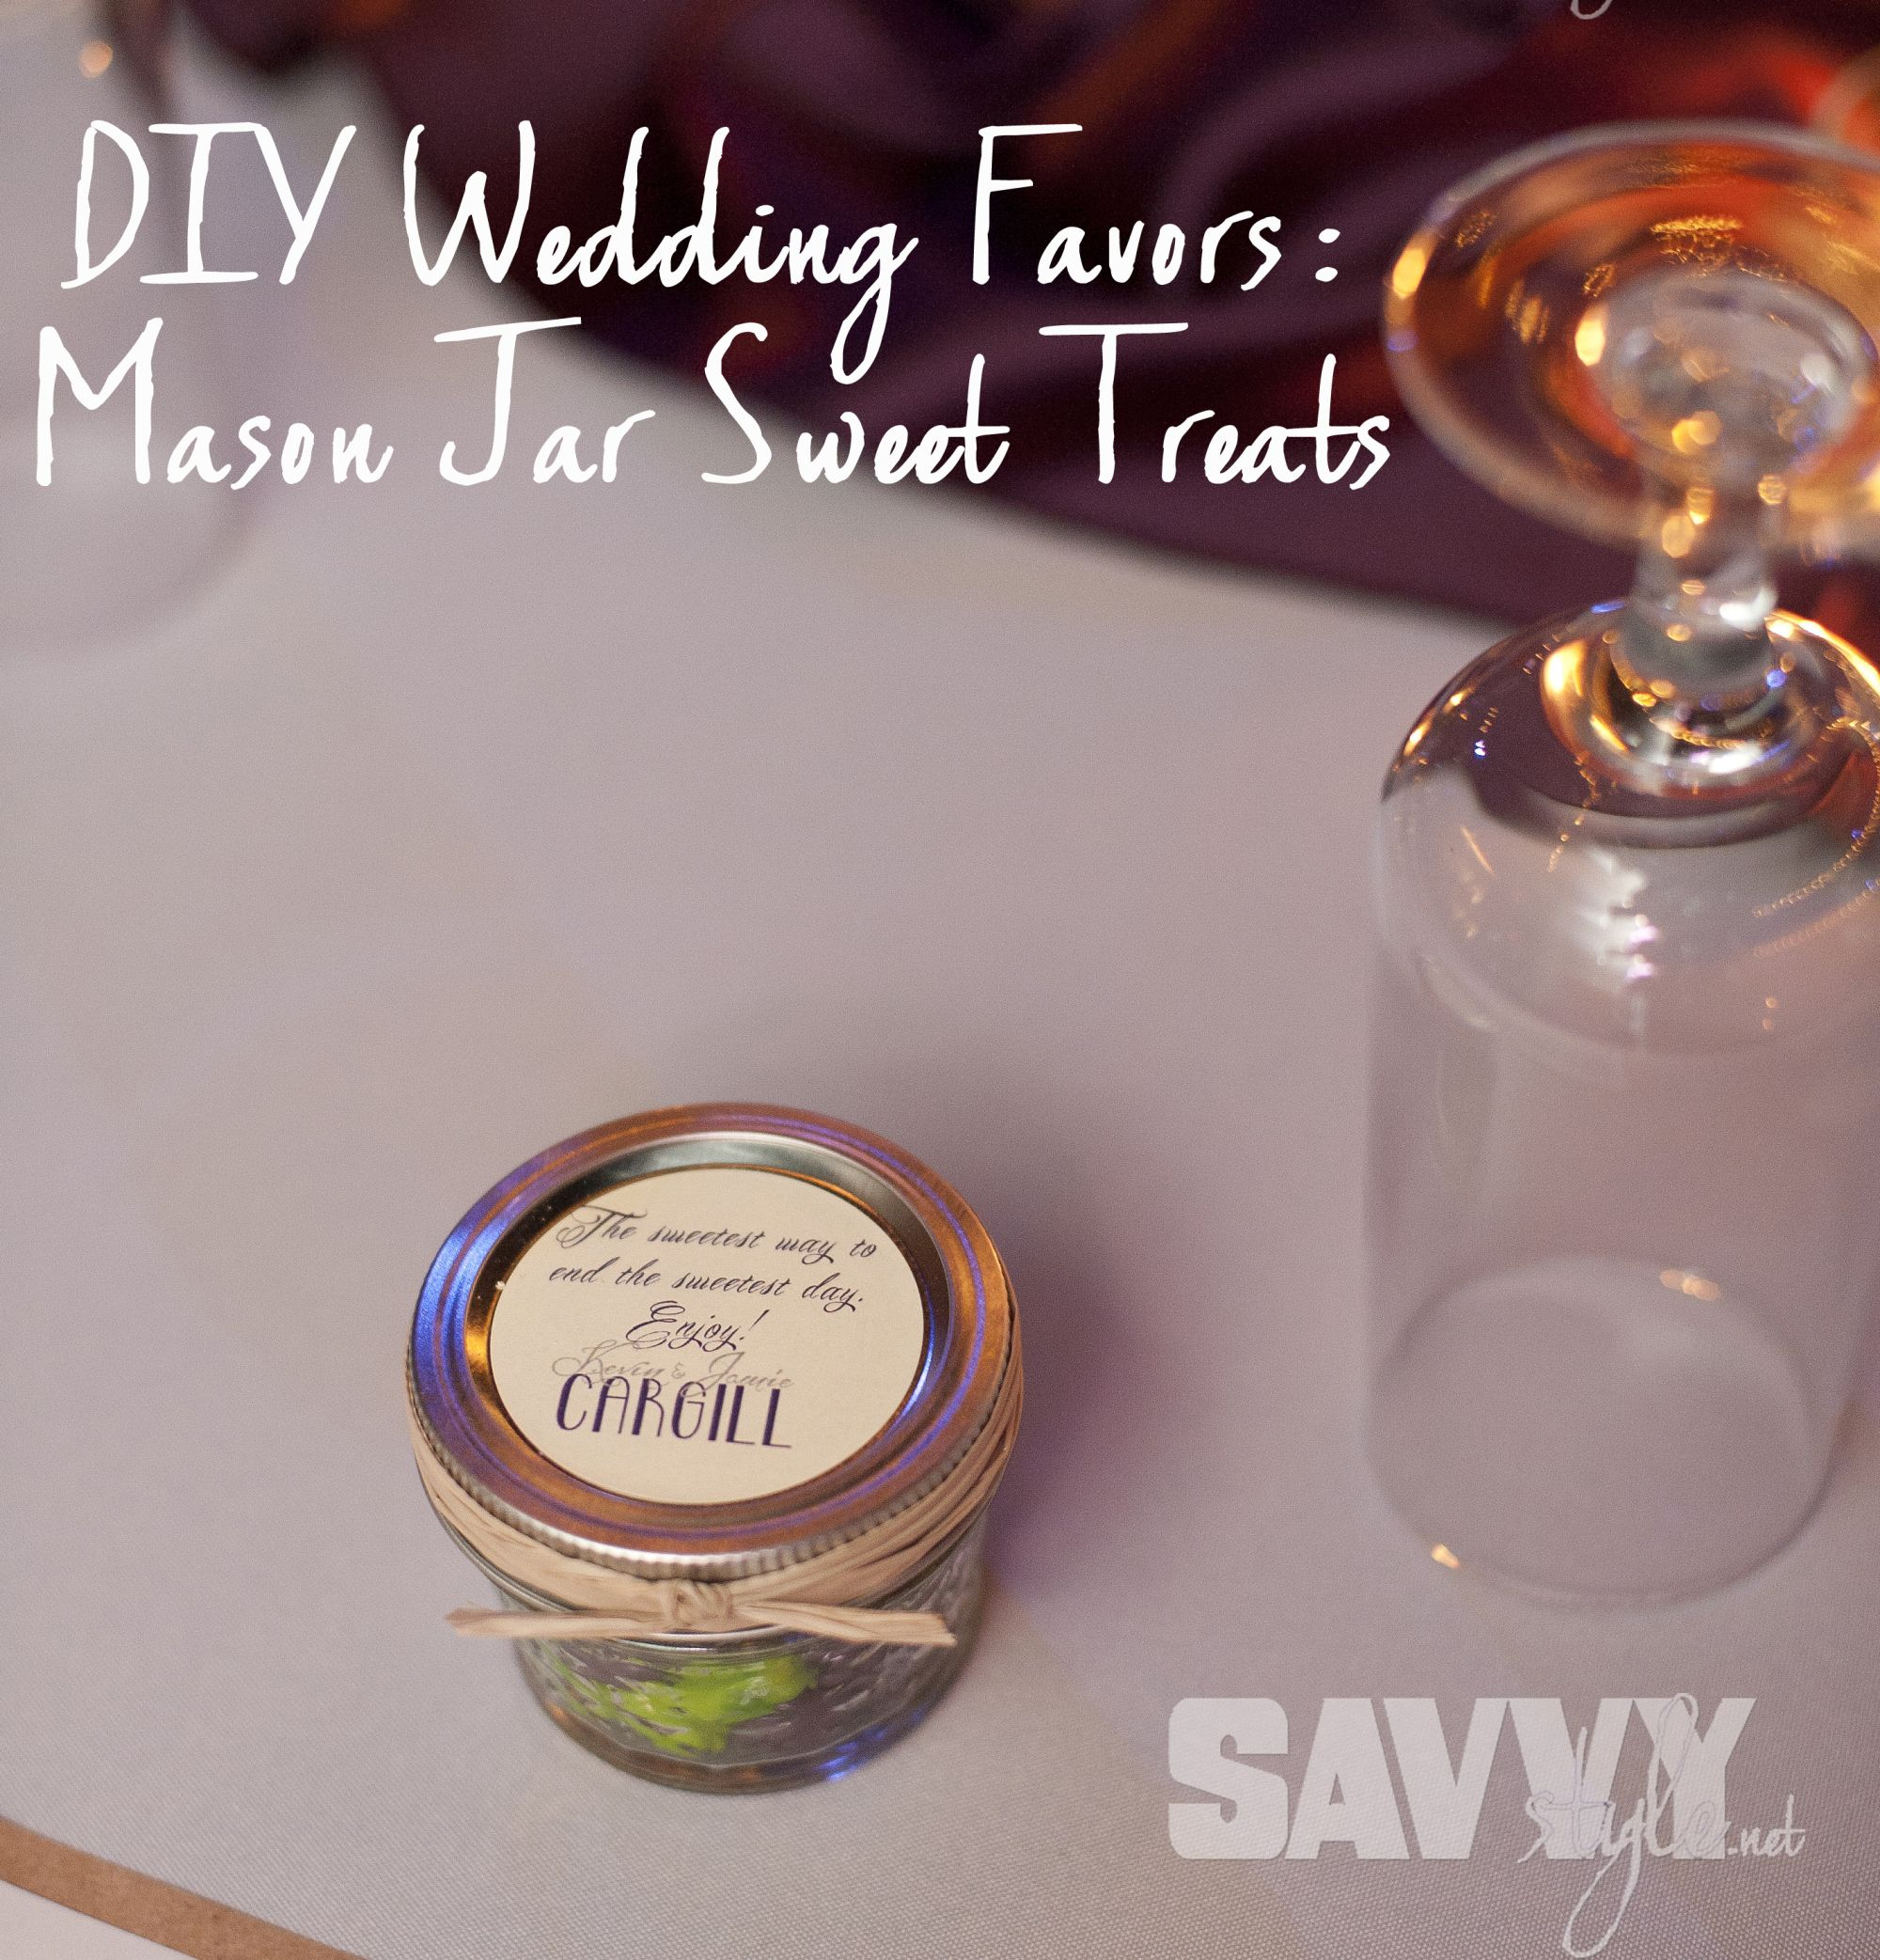 Widescreen diy mason jar wedding favors for mobile phones high quality simple and inexpensive treats savvy